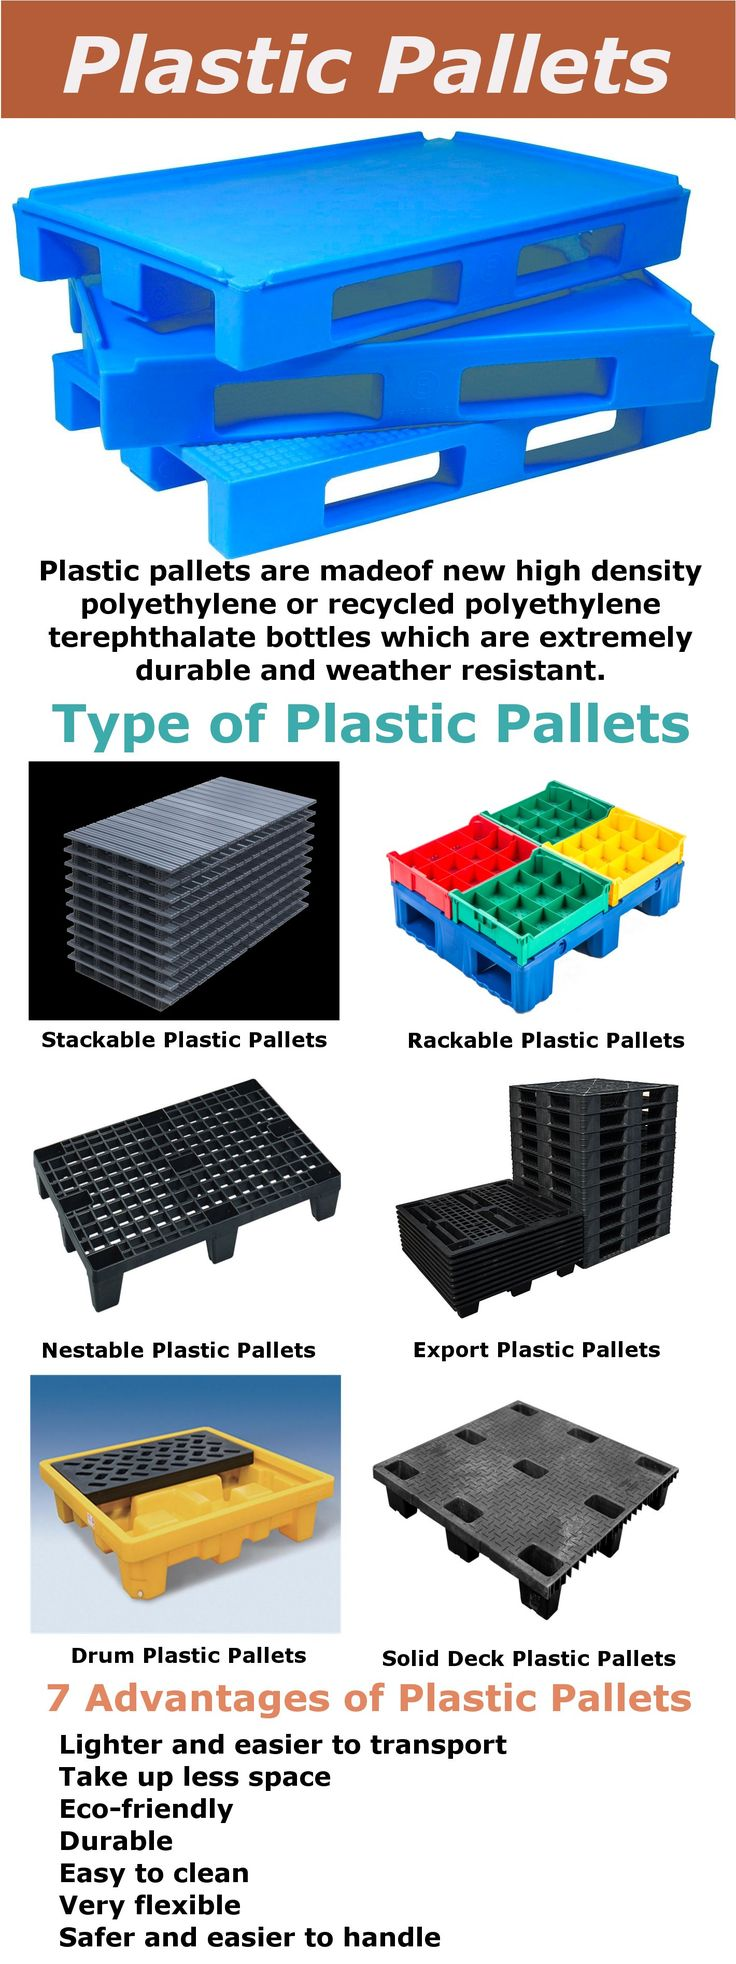 Get Here Business Listings Of Plastic Pallets Manufacturers